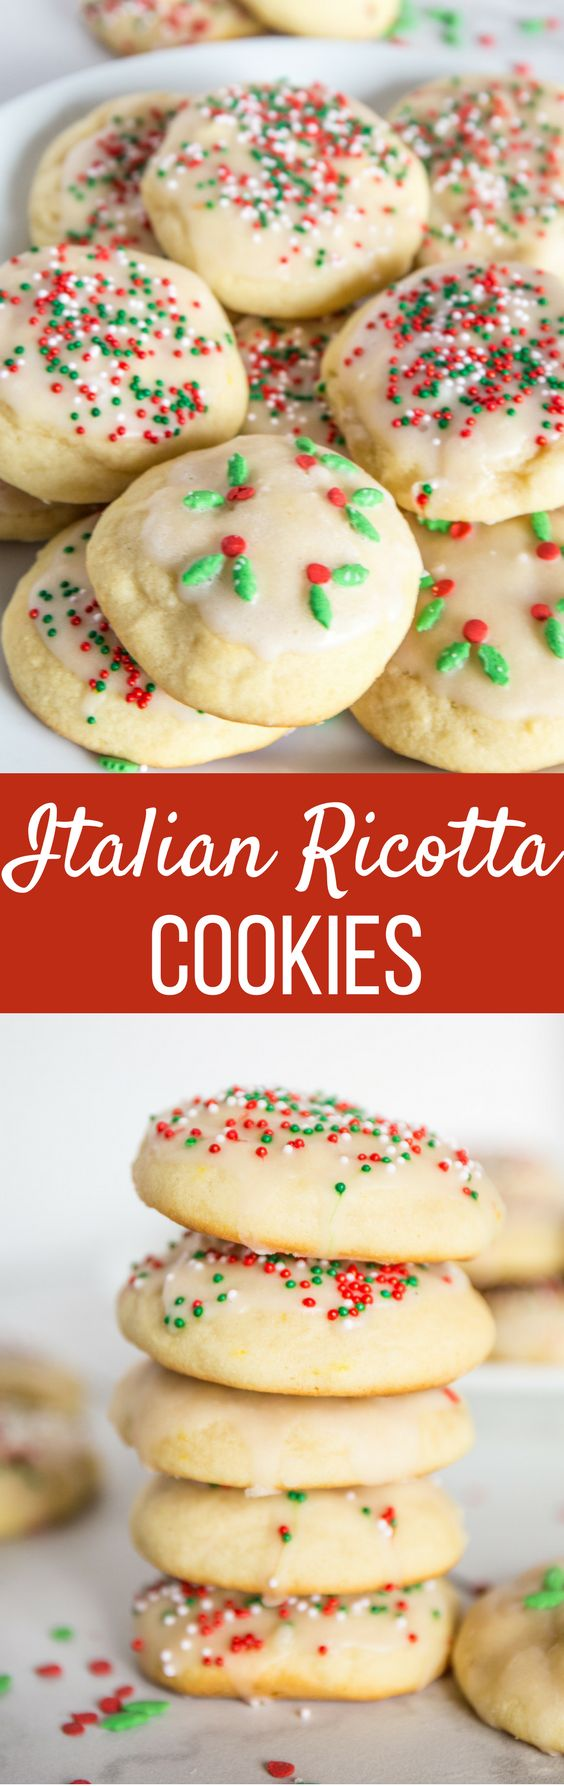 These Italian Ricotta Cookies are soft, delicate and flavored with just a hint of lemon. You won't be able to eat just one!